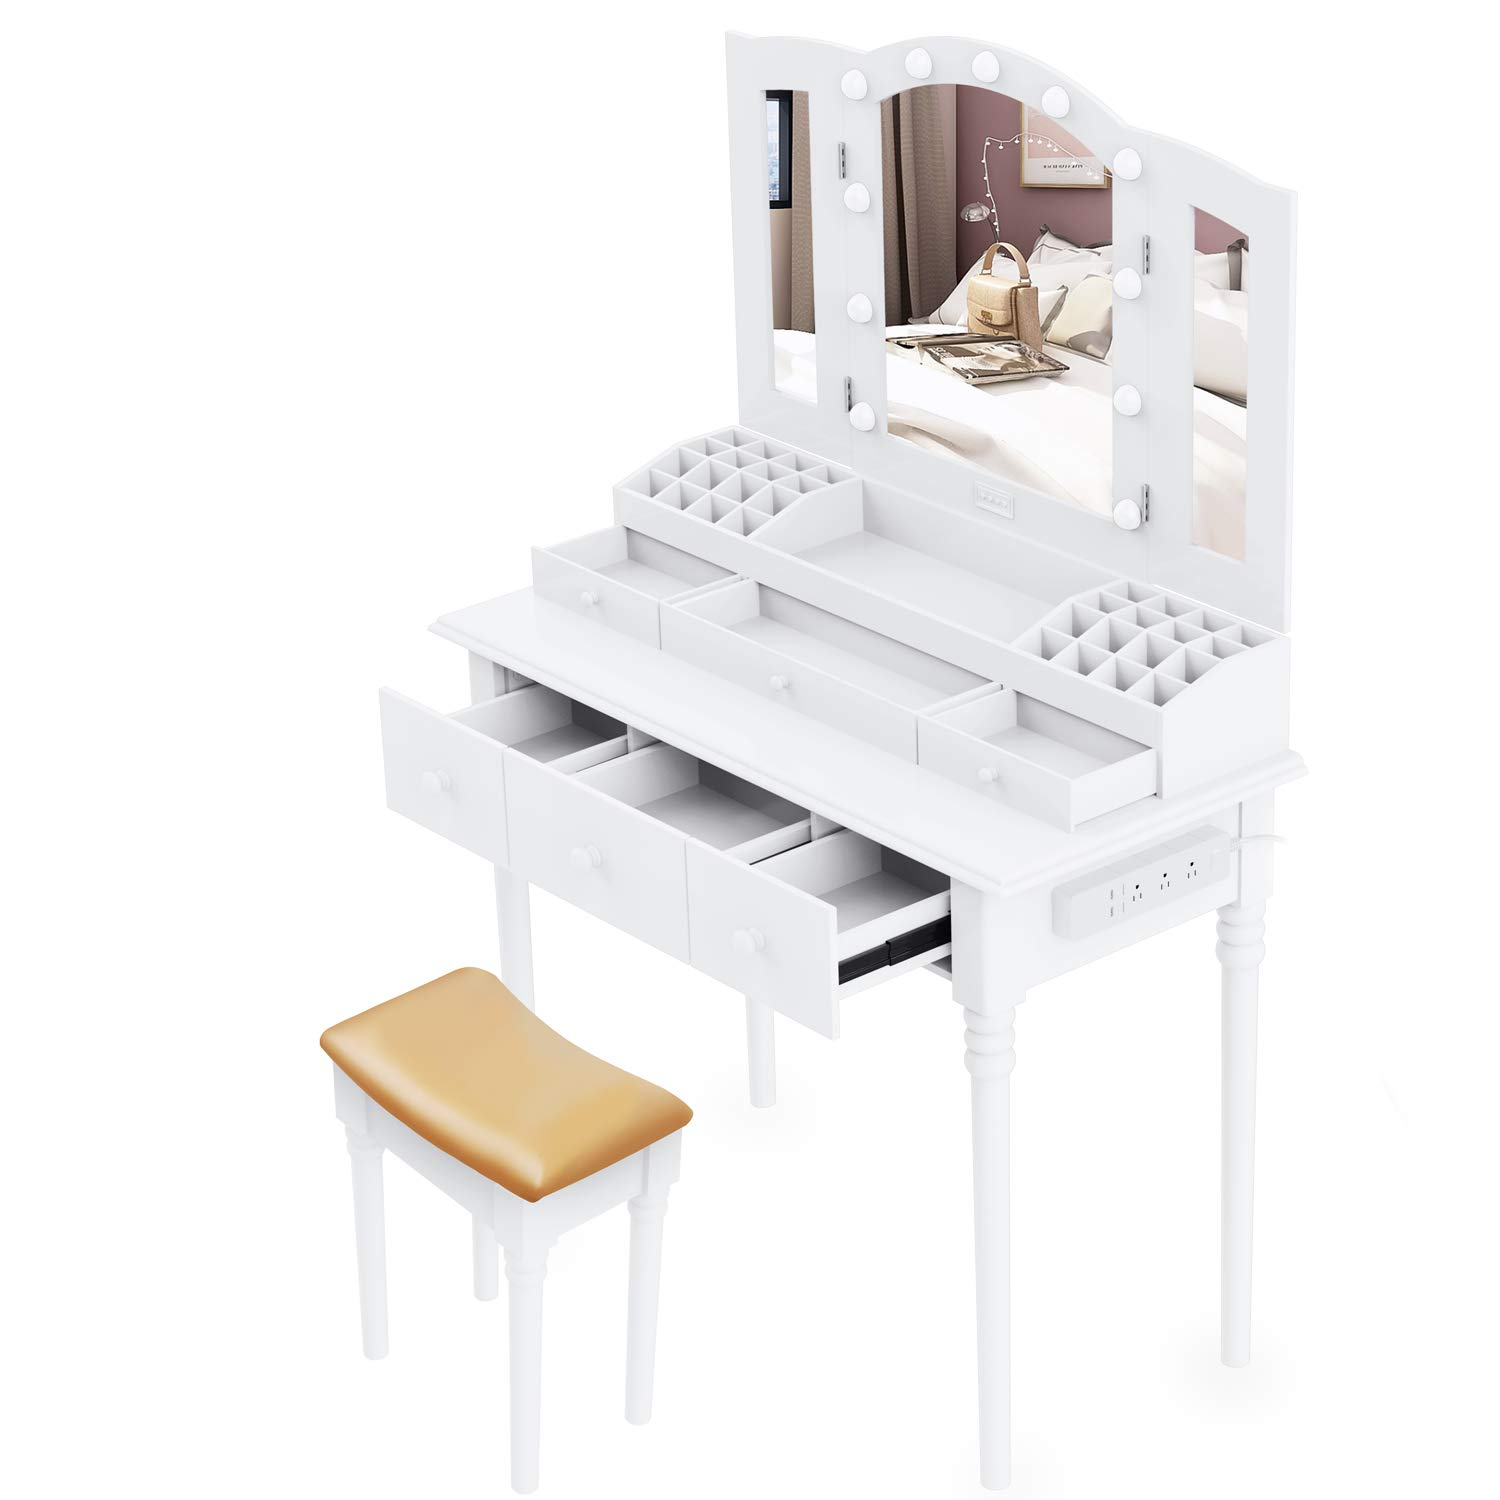 Dressing Table,Vanity Set Multifunctional Makeup Table with Stool Large Storage Vanity with Big Mirror Waterproof LED Light Bulbs and A Socket by Suninhome